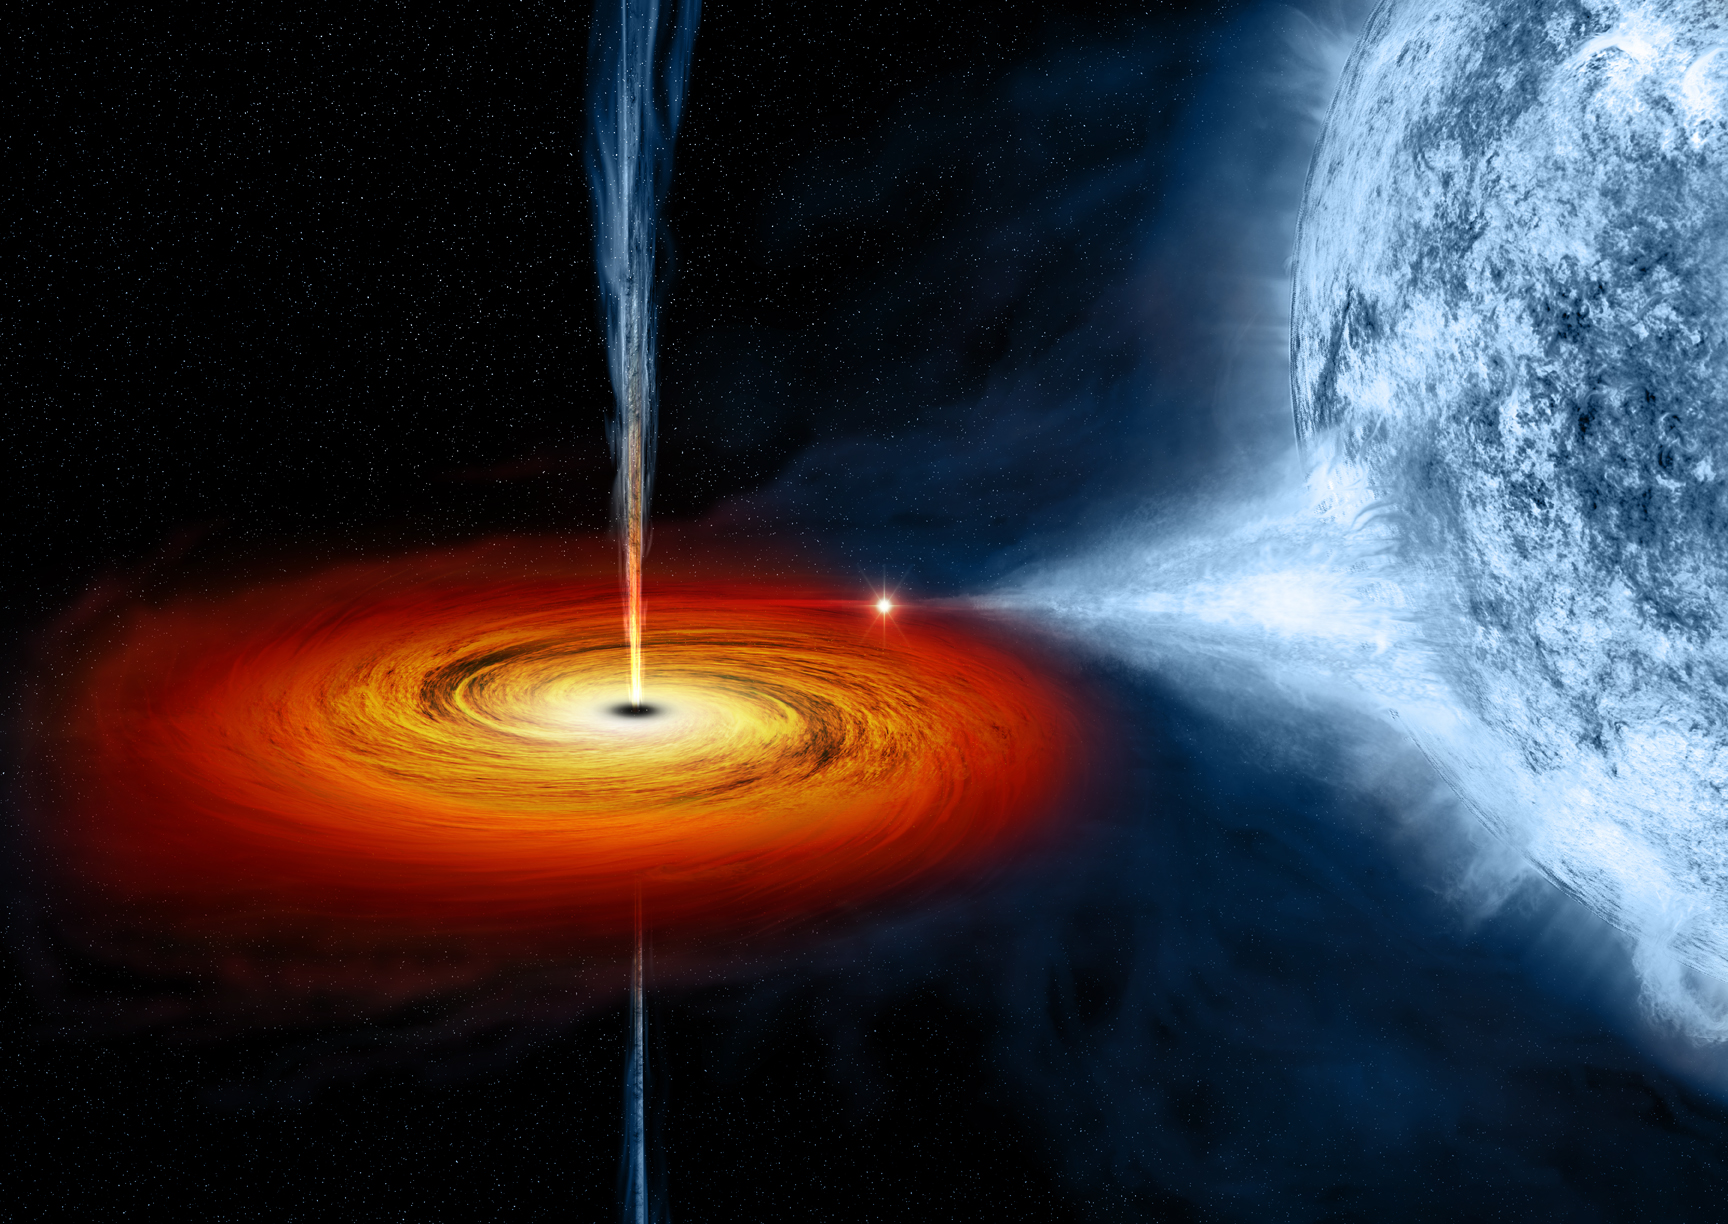 Artist's drawing a black hole (Cygnus X-1) as it pulls matter from a blue star beside it. - Image Credits: NASA/CXC/M.Weiss